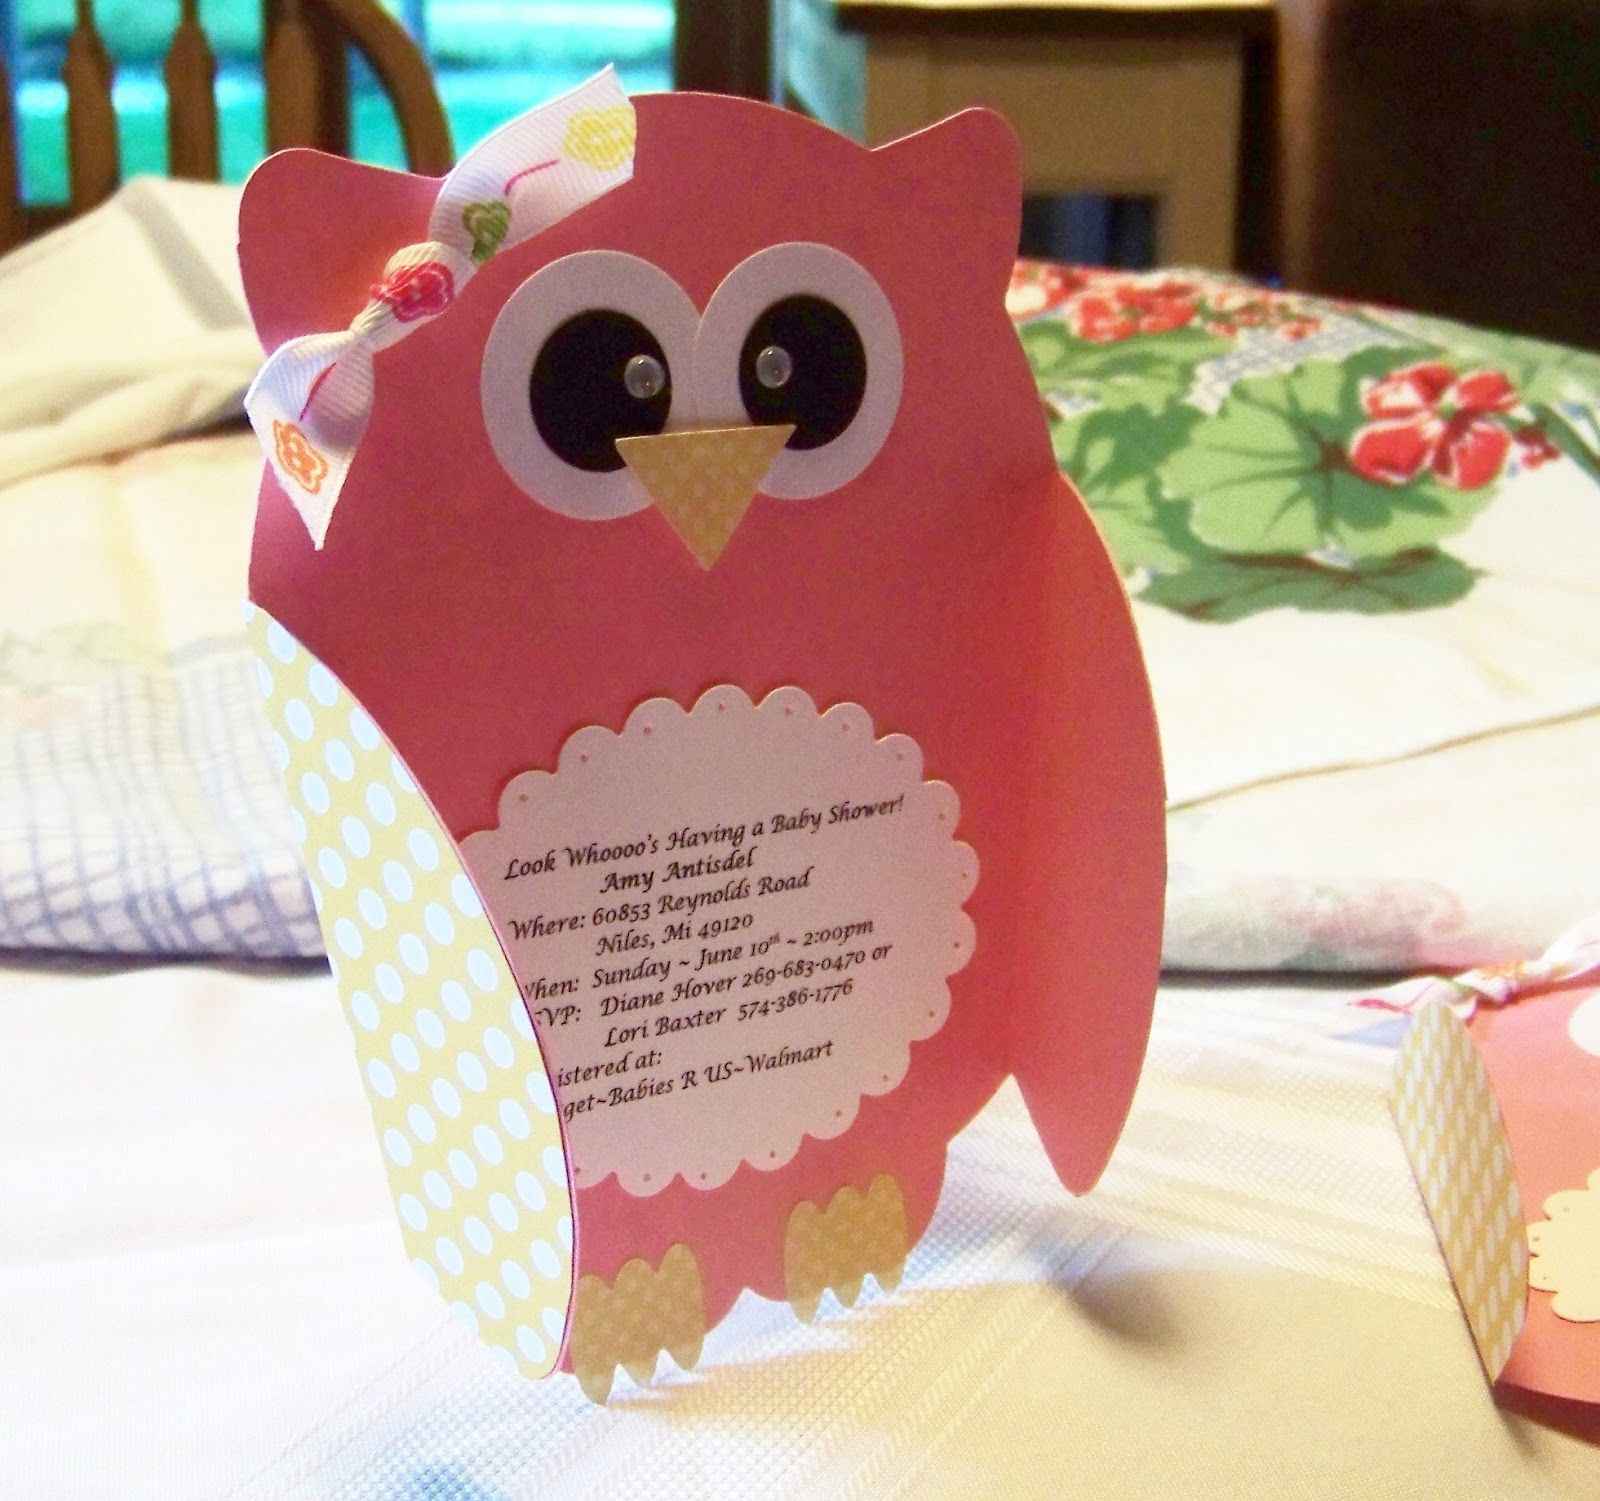 Cute owl invites from Nellies Nest | Ideas to try | Pinterest ...